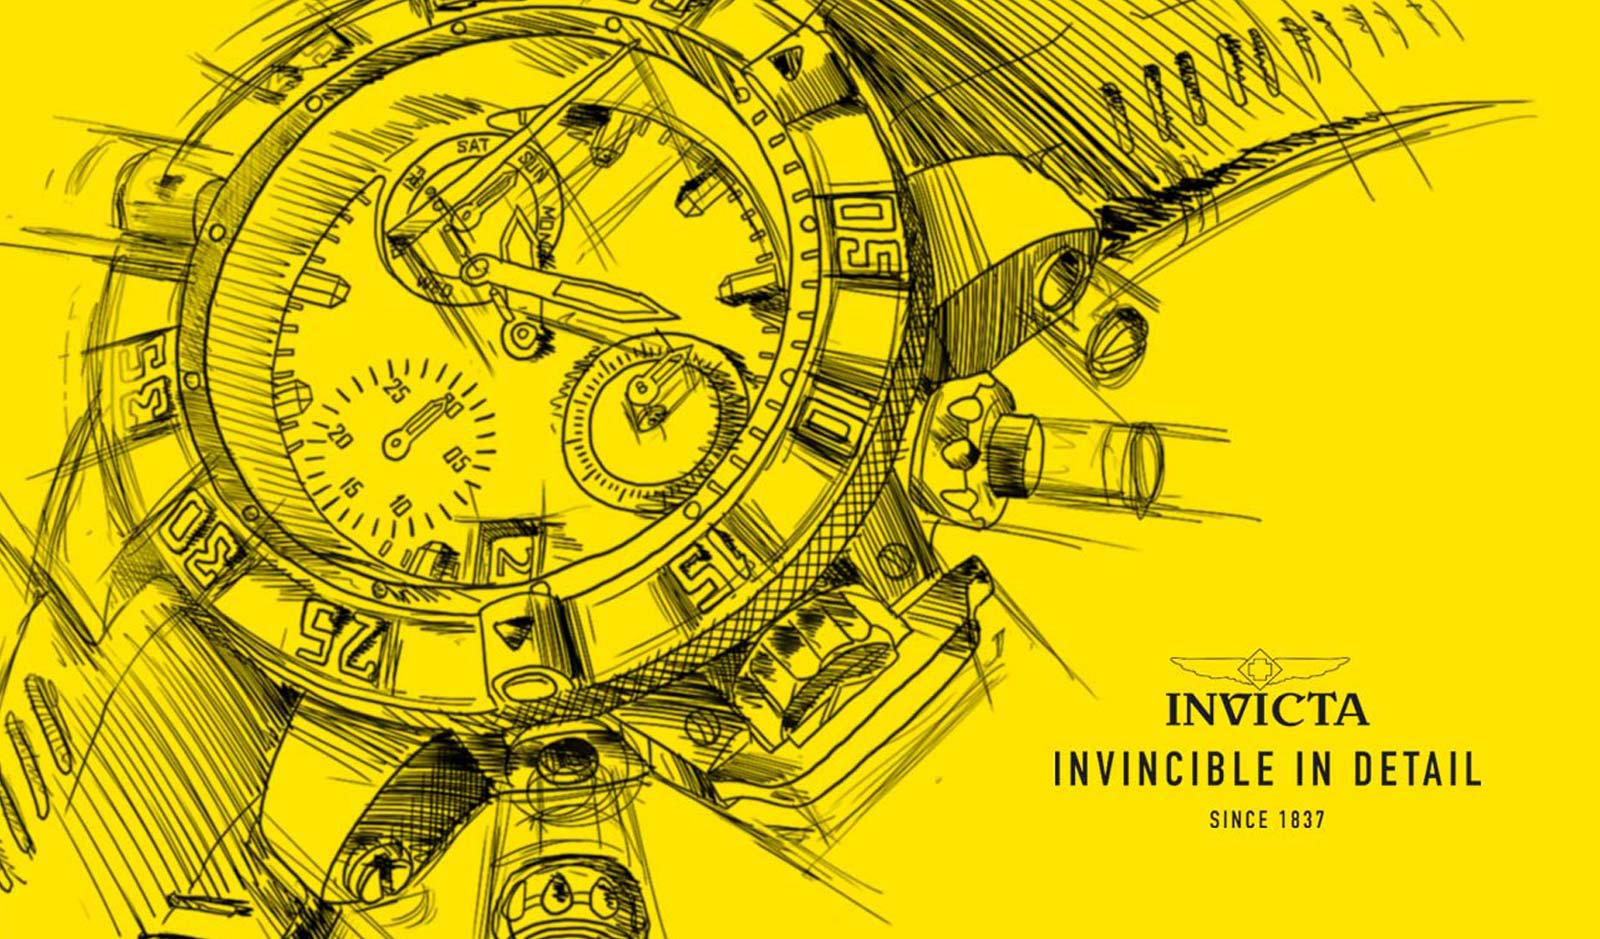 Invicta design tot in detail / Illustratie & Design